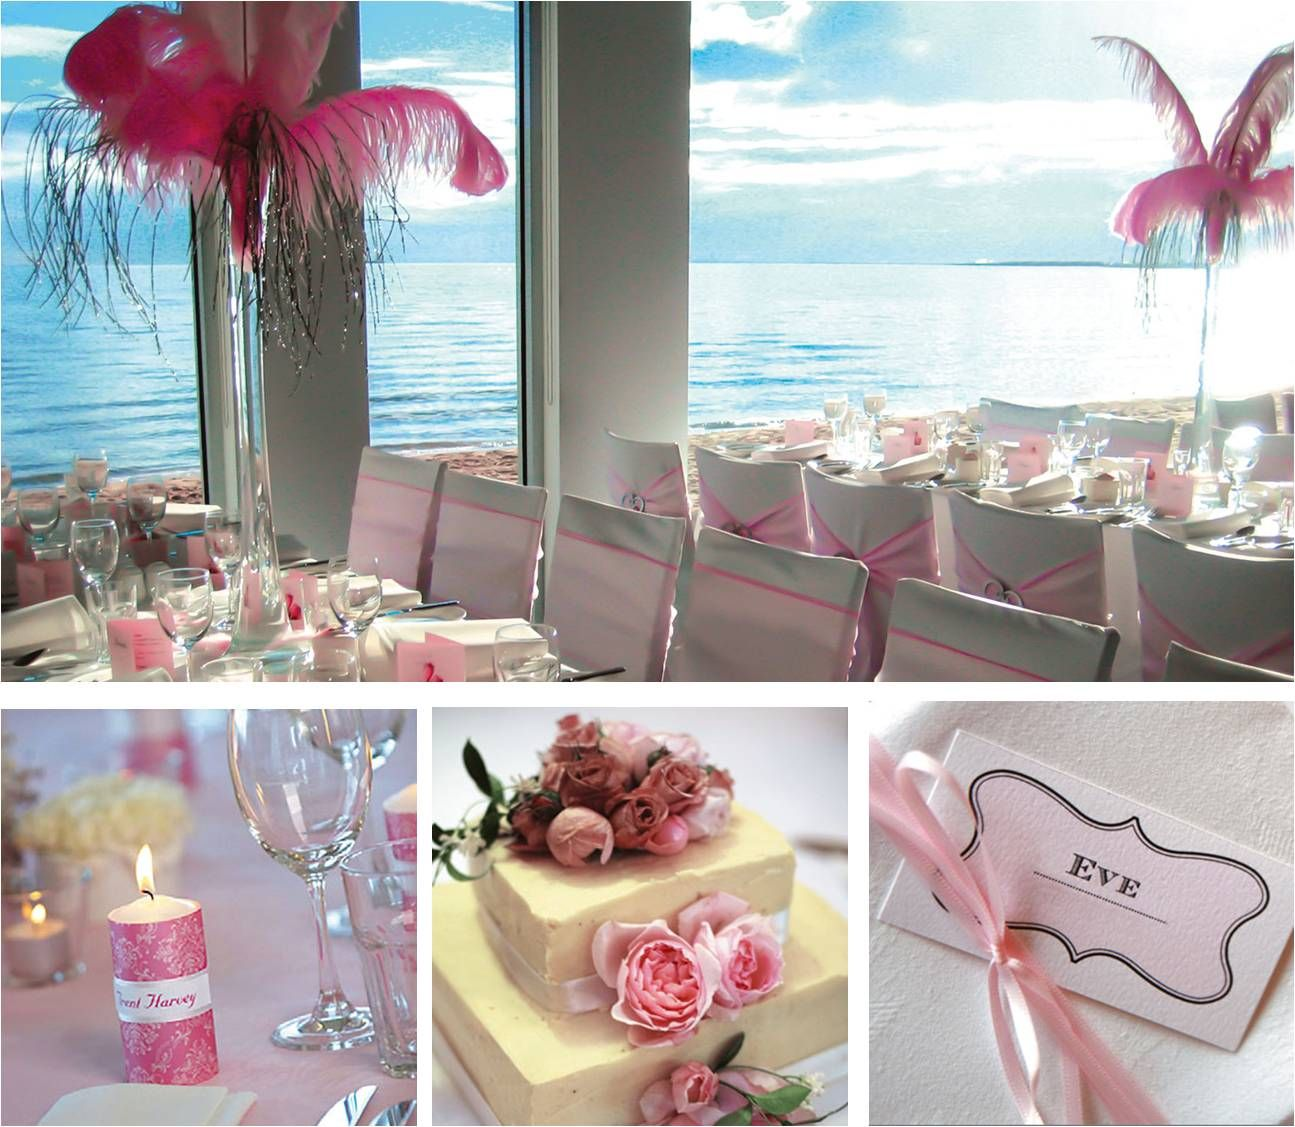 Weddings - Sails on the bay - Romantic, Seafood, Waterfront Restaurant